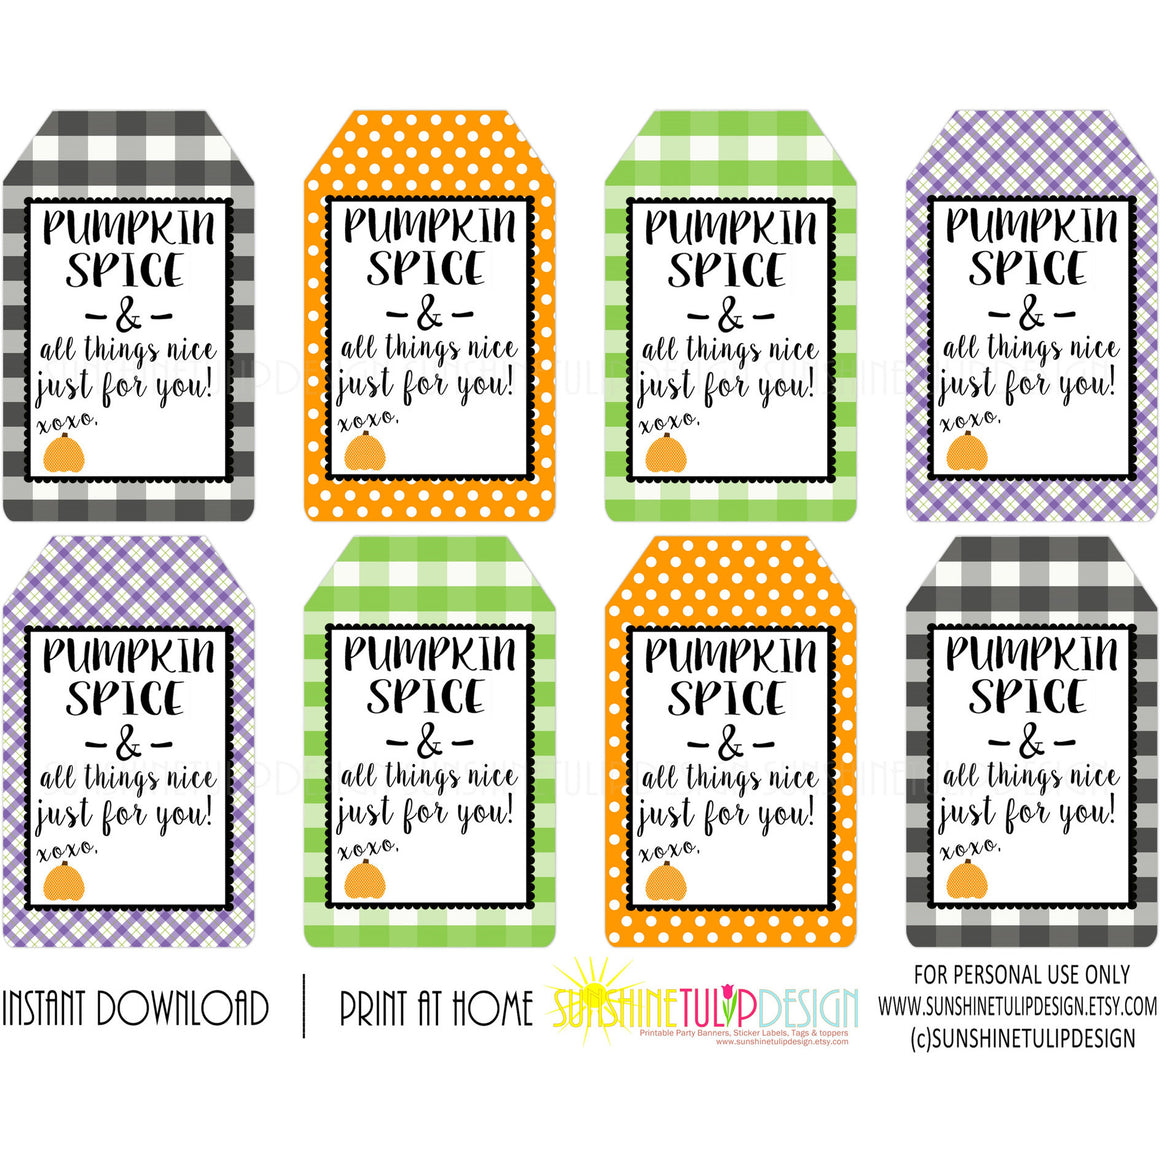 photo regarding Free Printable Teacher Appreciation Tags referred to as Pumpkin Spice Almost everything Pleasant Tags, Printable Instructor Appreciation HALLOWEEN tags, Pumpkin Spice Present Tags by way of SUNSHINETULIPDESIGN